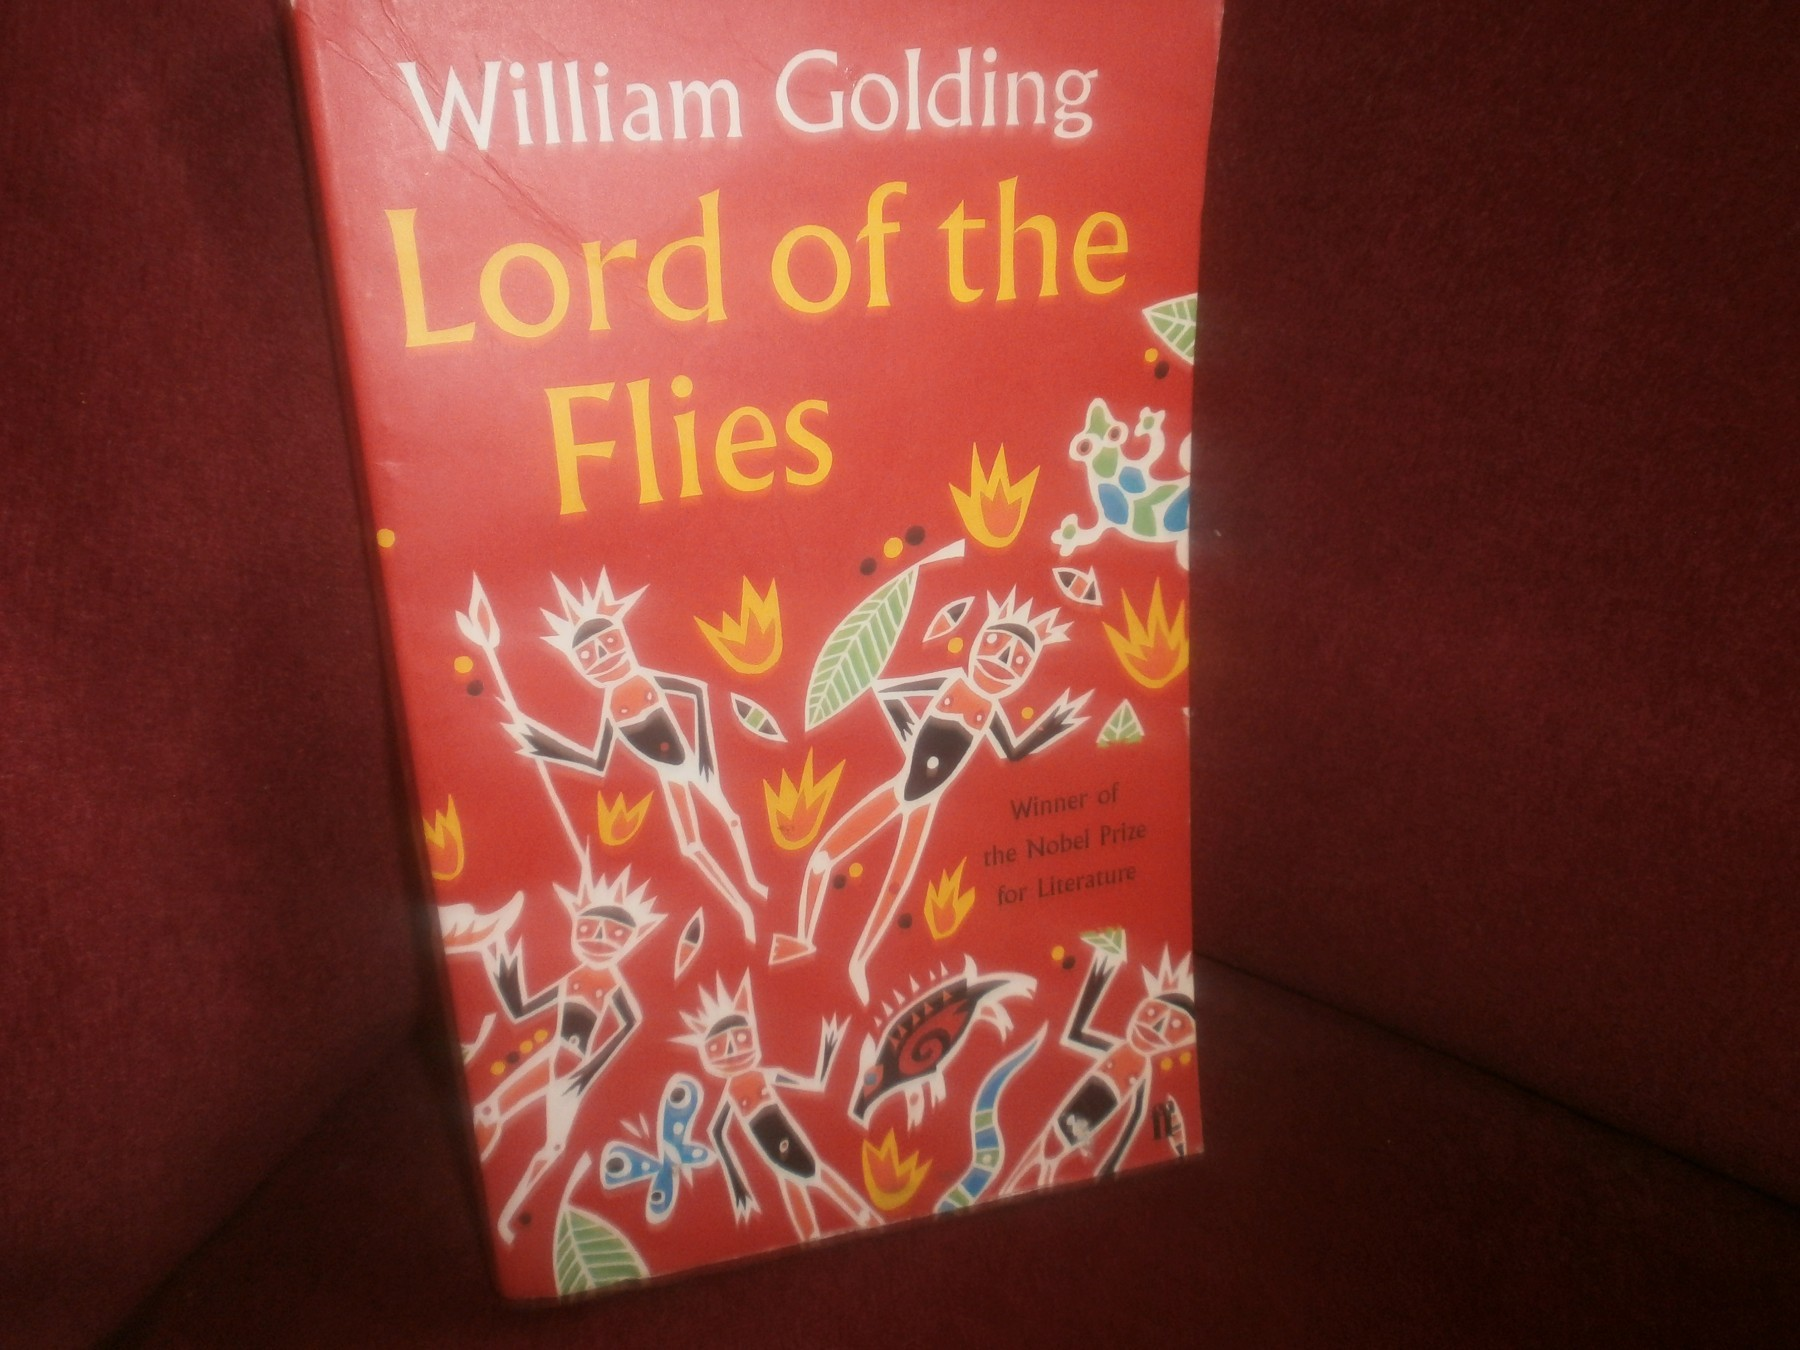 a summary of the lord of the flies by william golding Sun, 06 may 2018 11:40:00 gmt chapter 8 summary lord pdf - need help with chapter 8 in william golding's lord of the flies check out our revolutionary side-by-side.